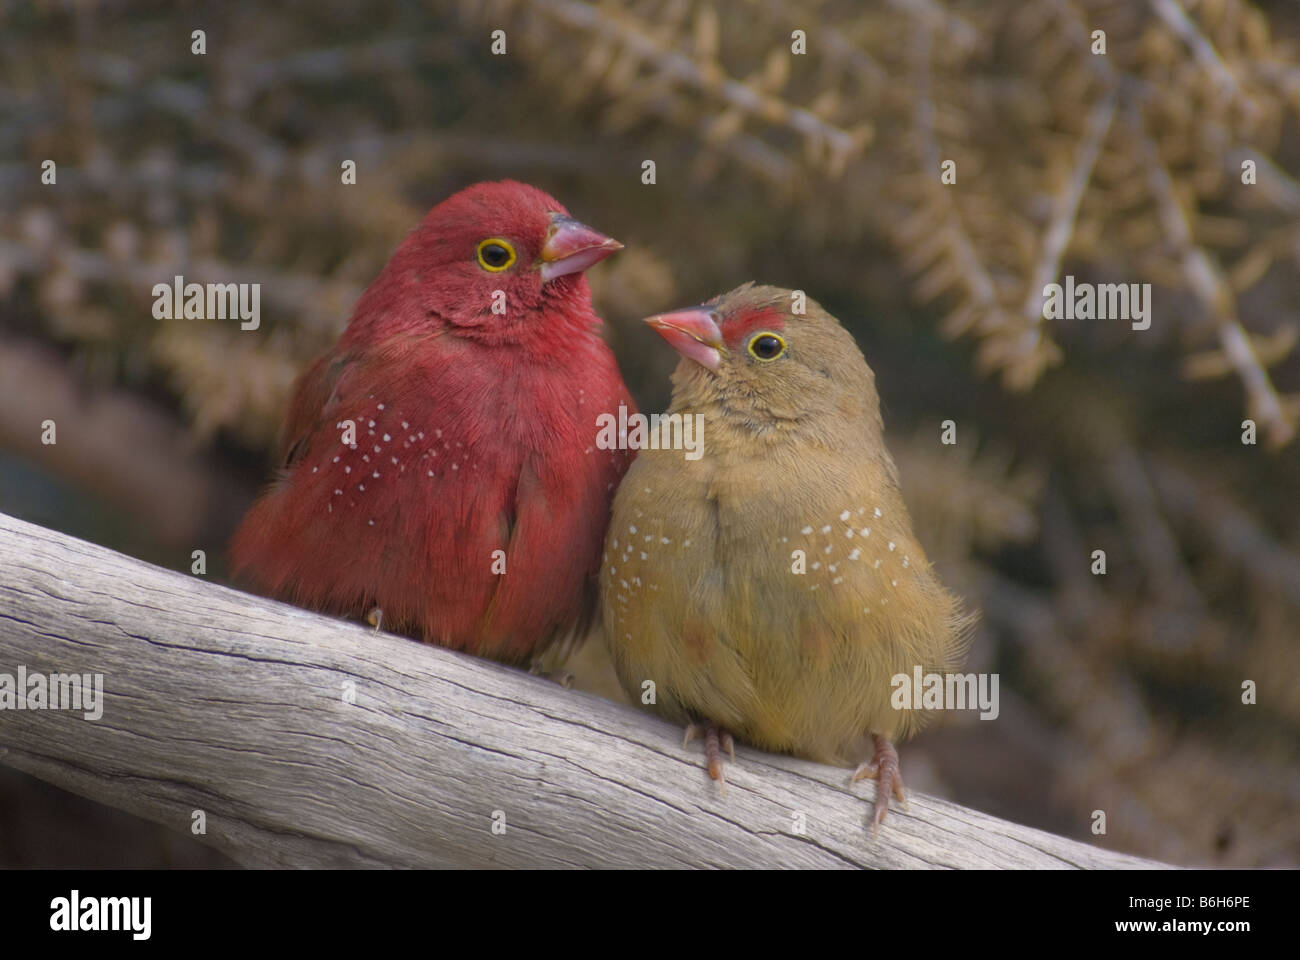 Red-billed Firefinch pair 'Lagonosticta senegala' Stock Photo